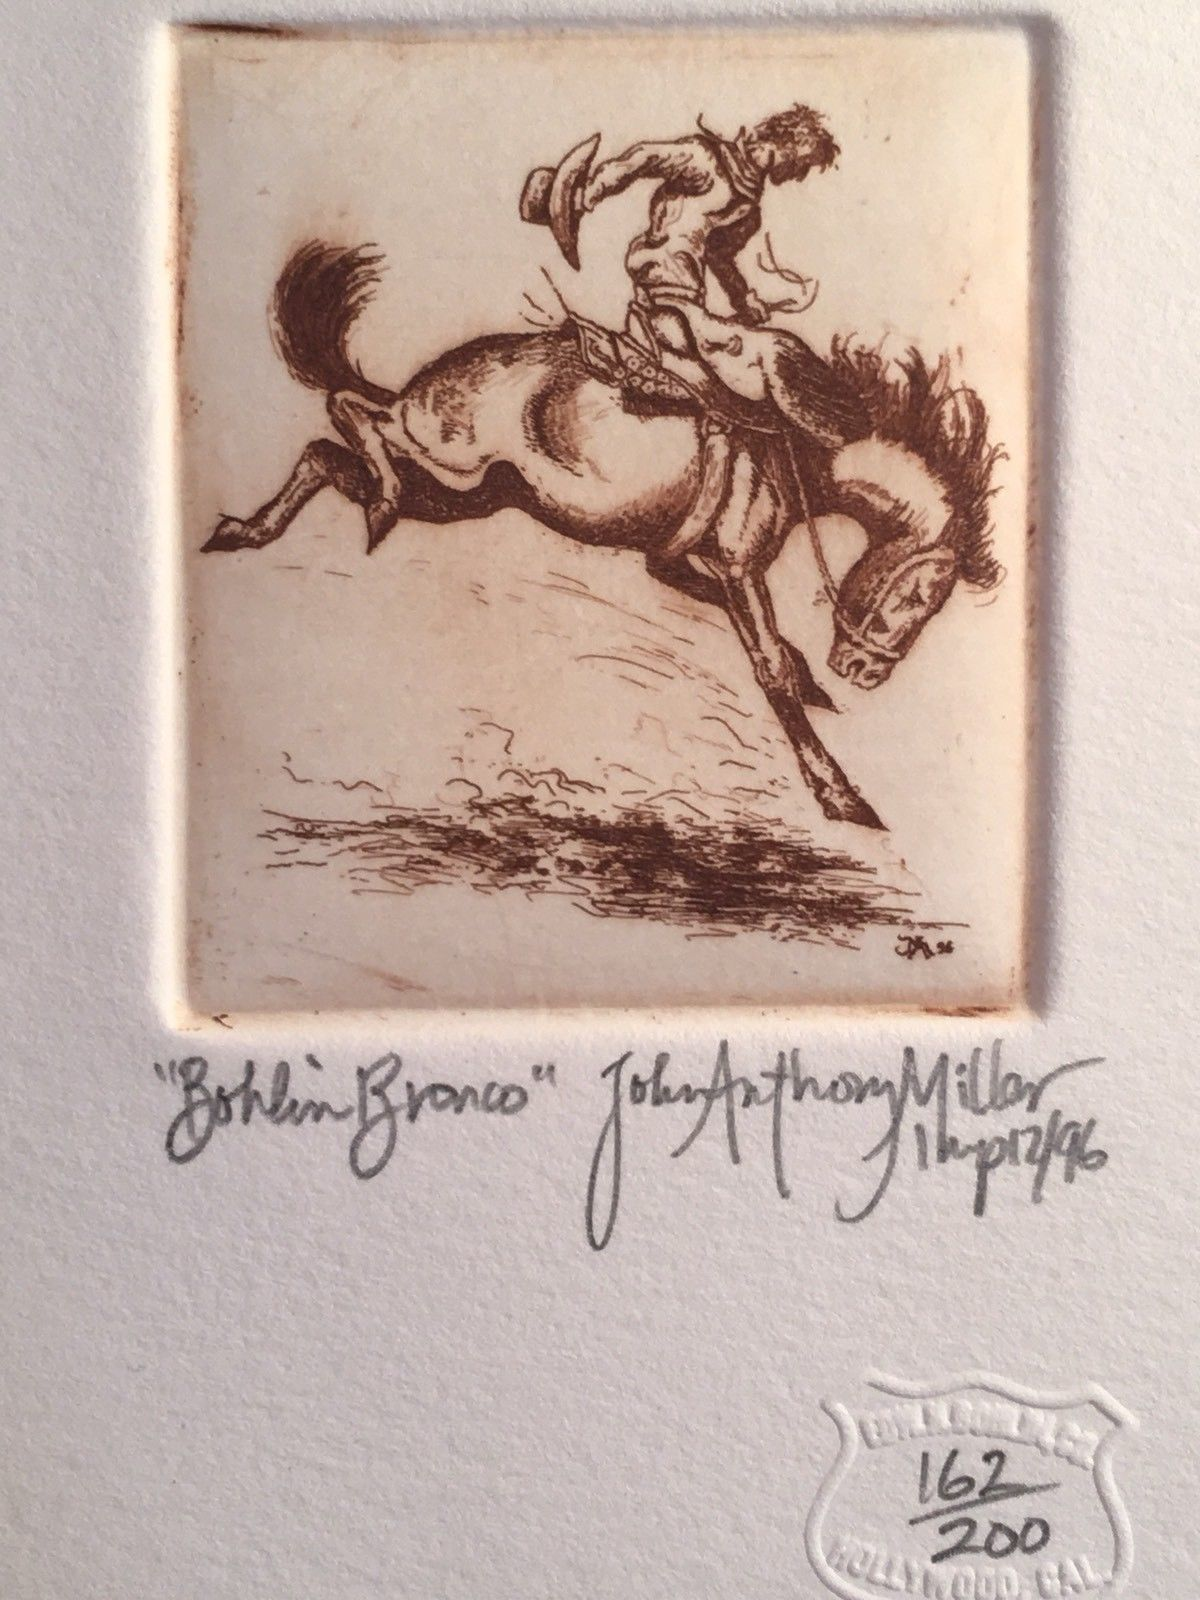 Bohlin Bronco Etching limited John Anthony Miller - w/ John T. Reynolds COA